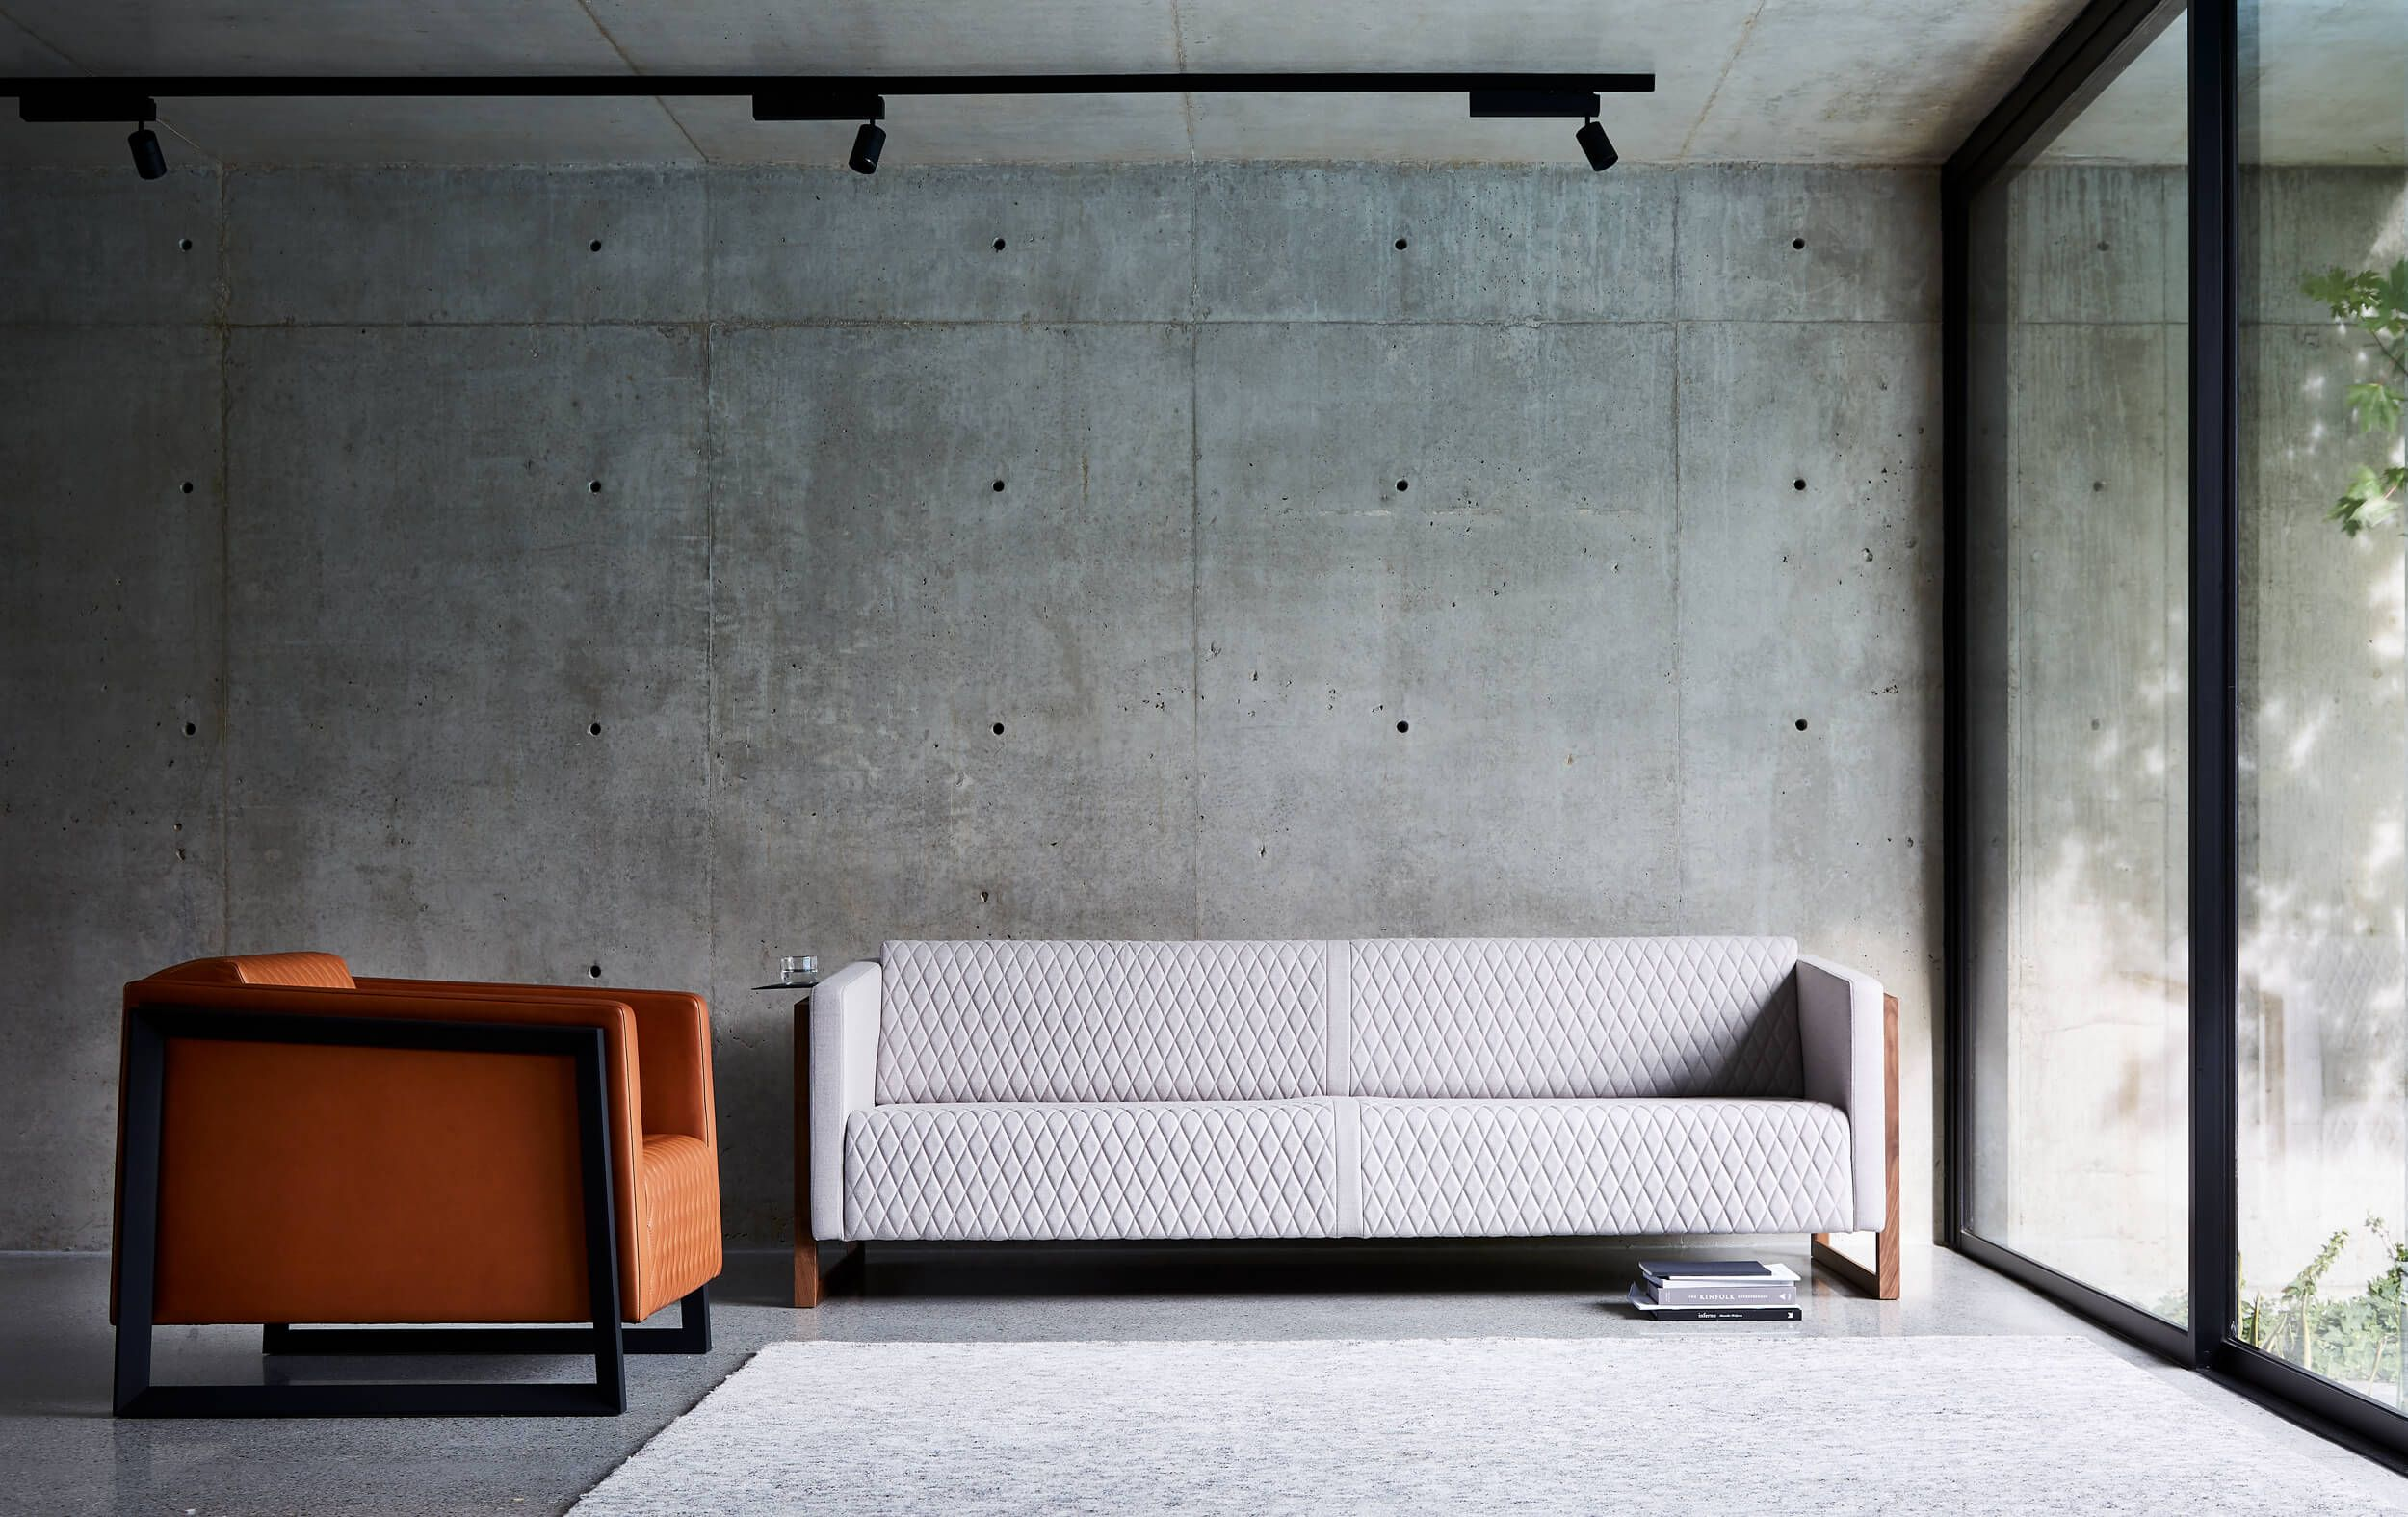 Franco Crea S Signature Style Of Refined Sophisticated Contemporary Furniture And Custom Work Is A Jo Gorgeous Sofas Luxury Furniture Stores Furniture Design